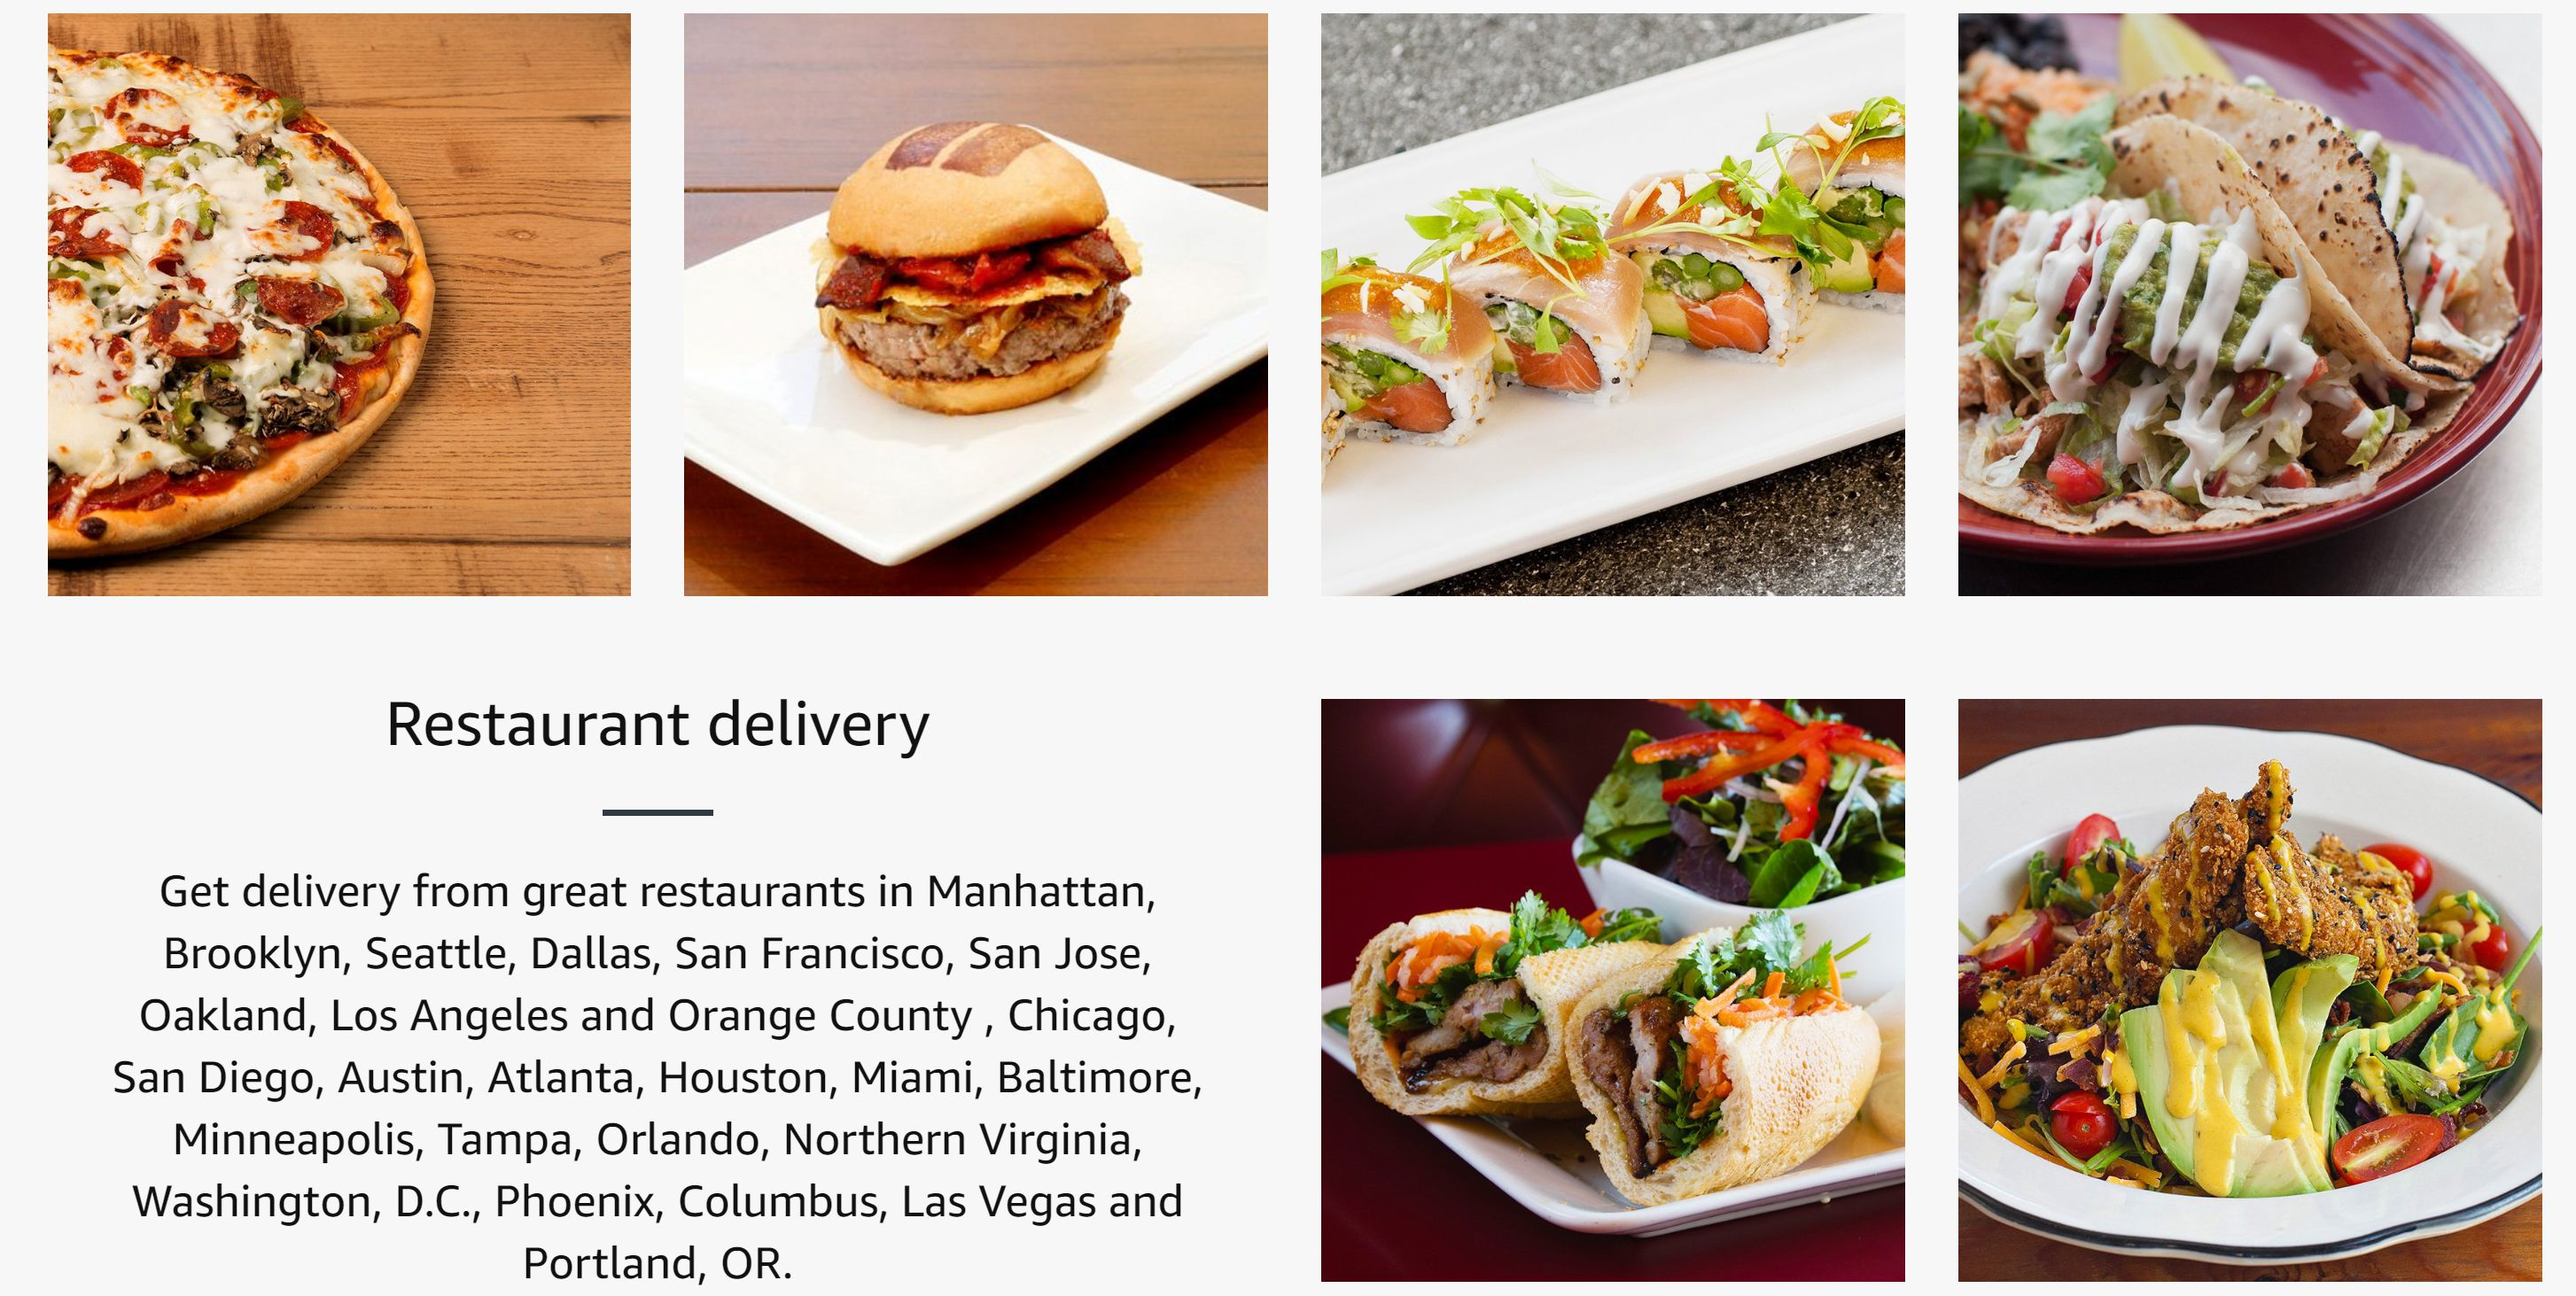 Amazon Prime Now Restaurant delivery section